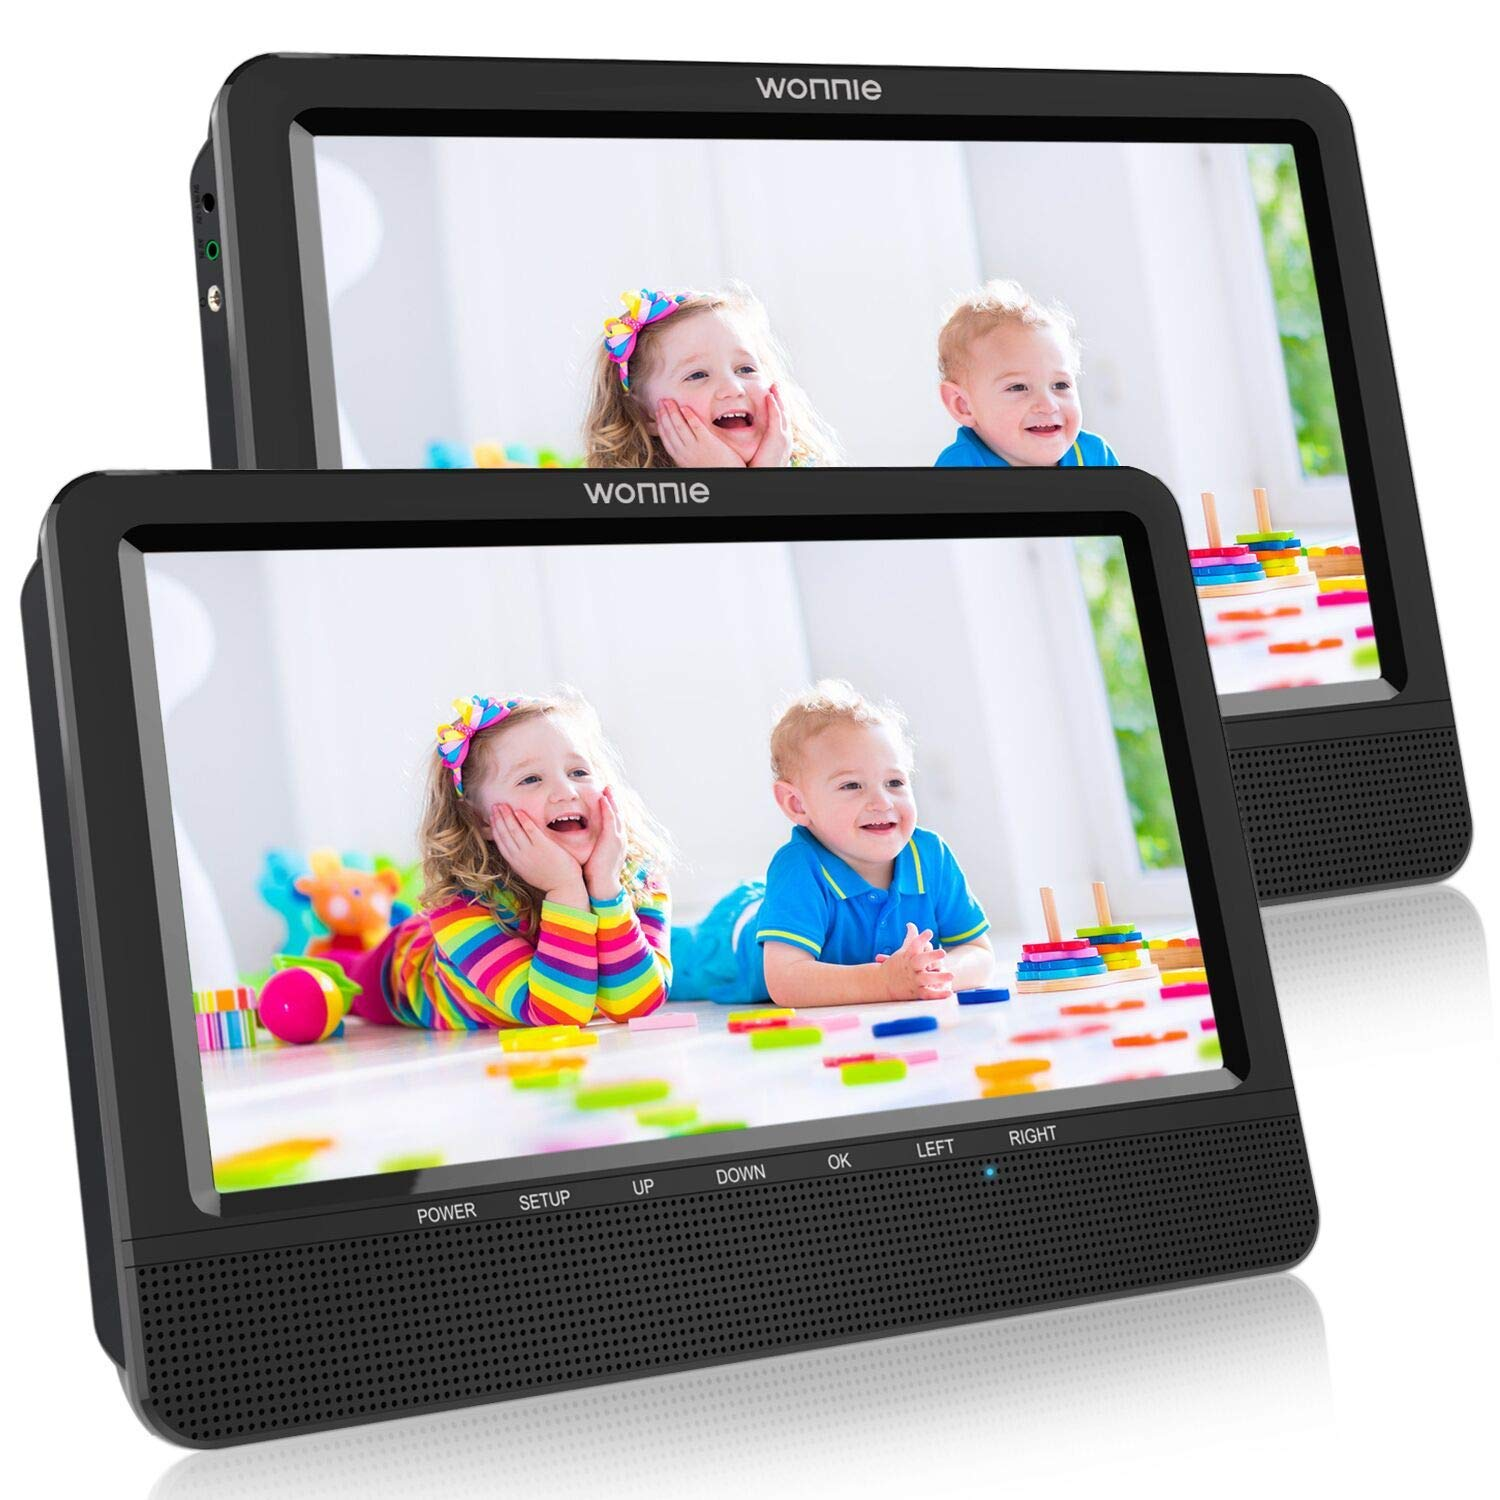 WONNIE 10.5 Portable Dual DVD Players, 1024x800 HD LCD TFT, USB/SD/MMC Card Readers, Built-in 5 Hours Rechargeable Battery, Stereo Sound, Regions Free, AV Out & in by WONNIE